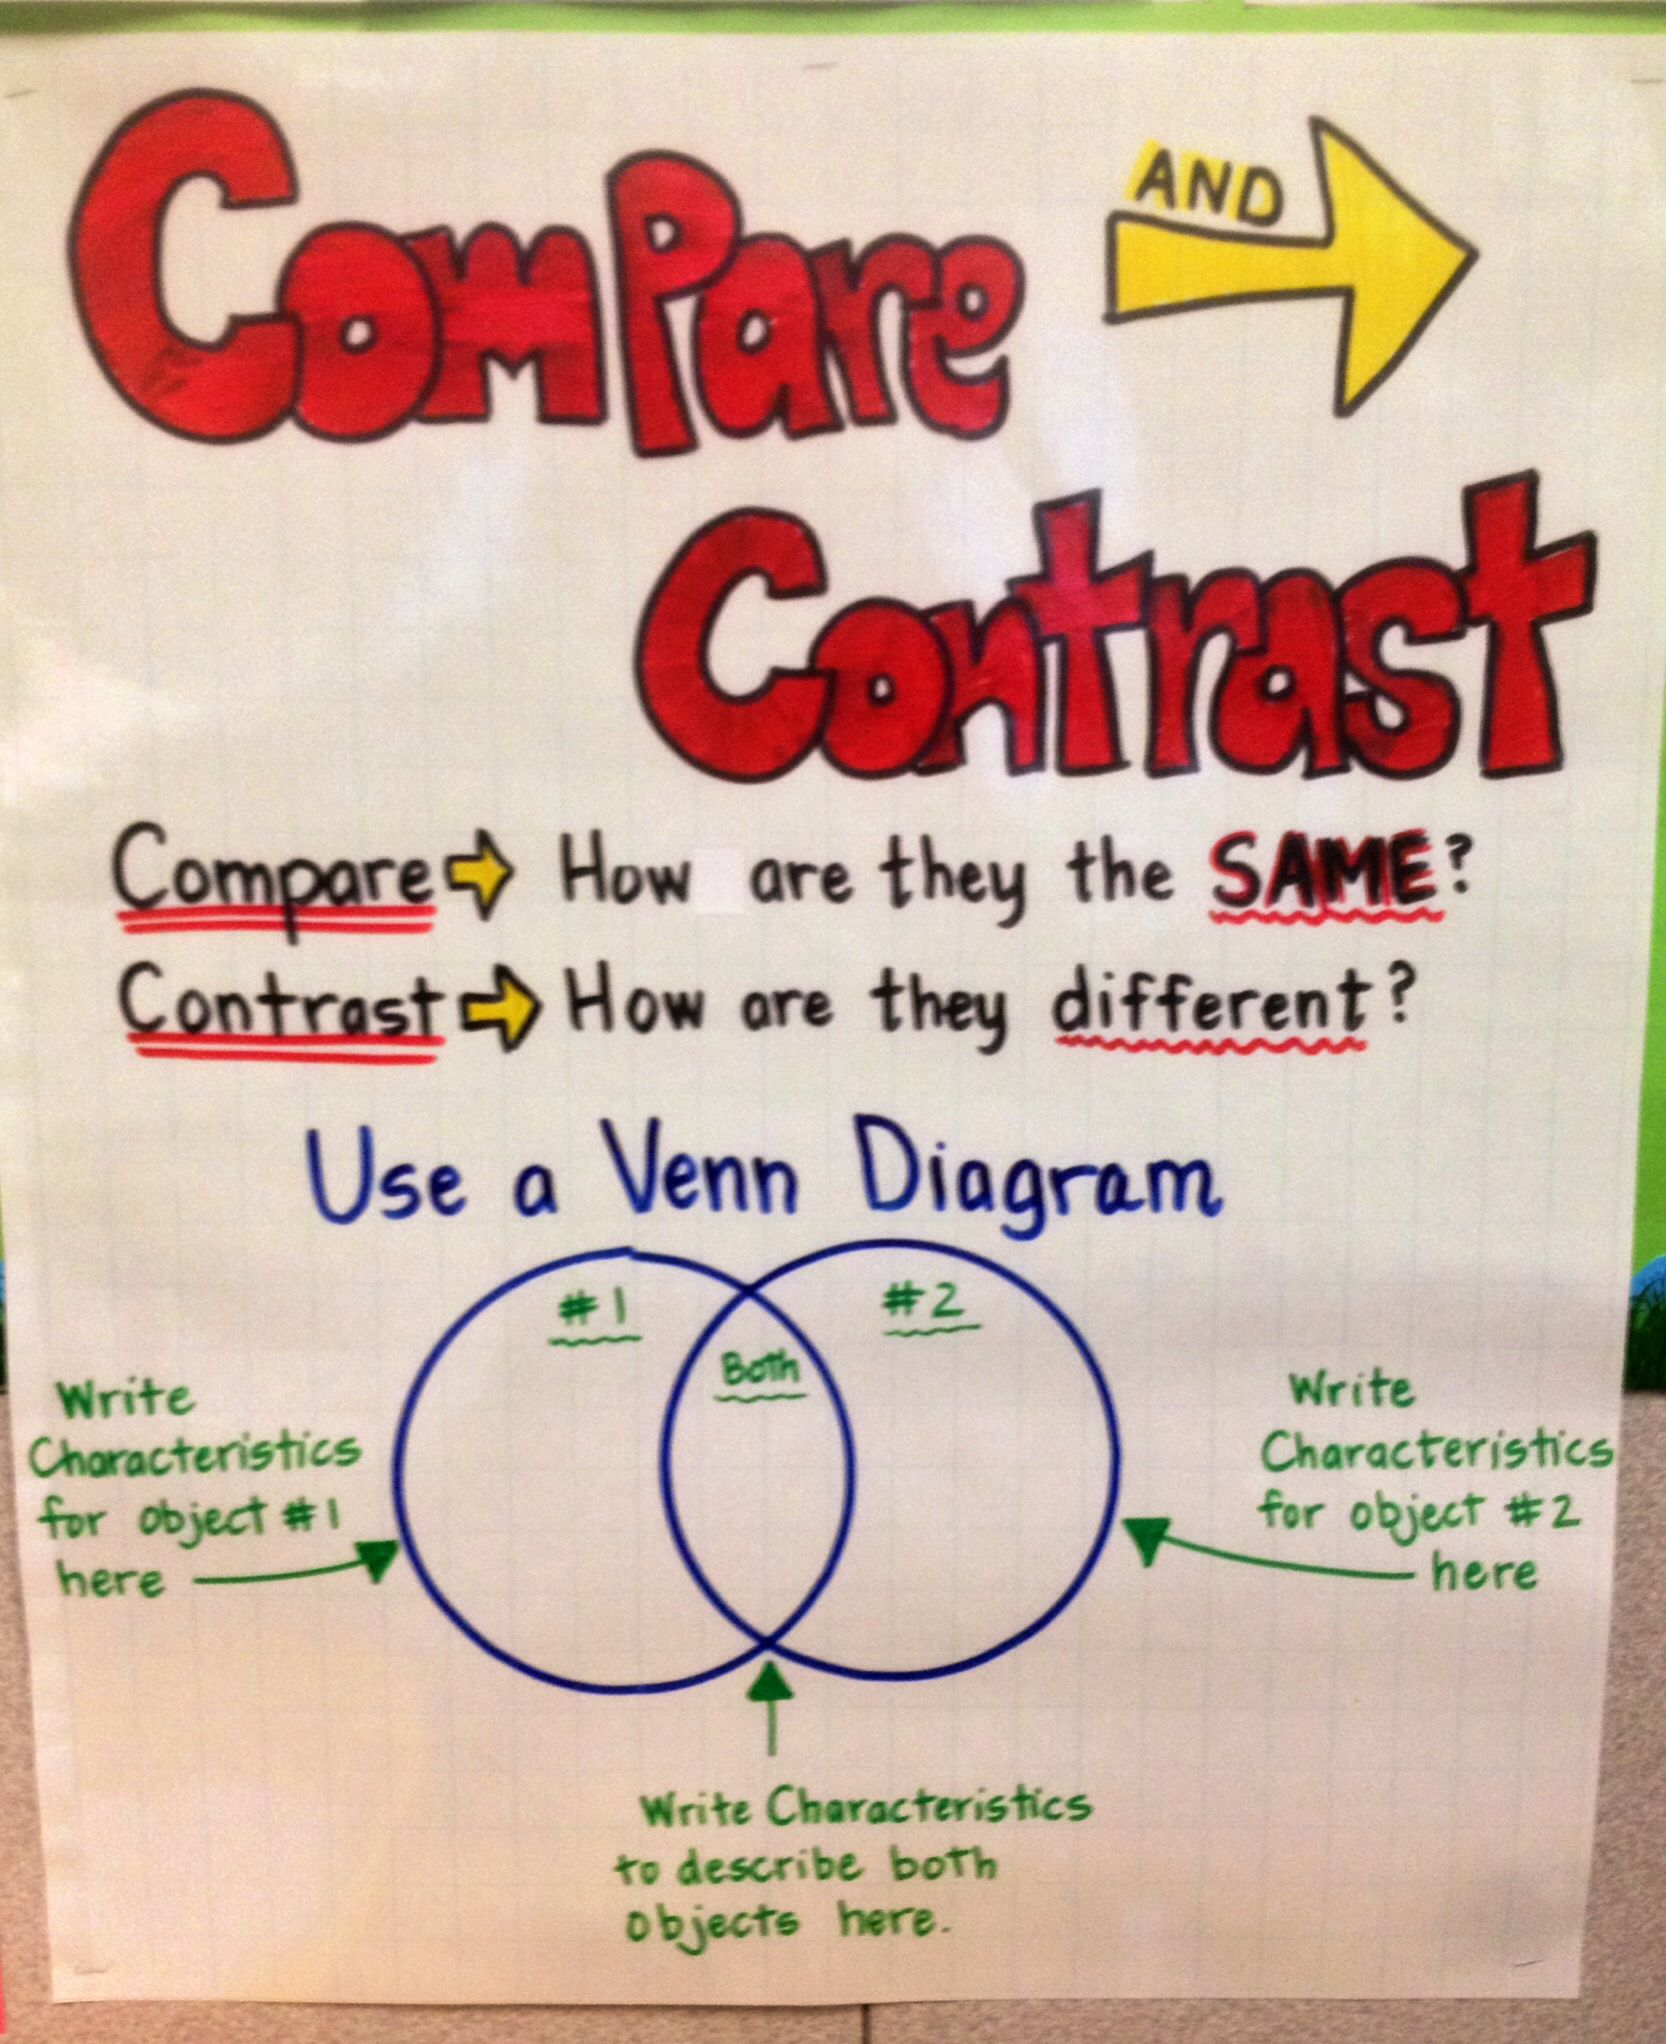 How to Compare and Contrast with the Common Core in Fourth Grade